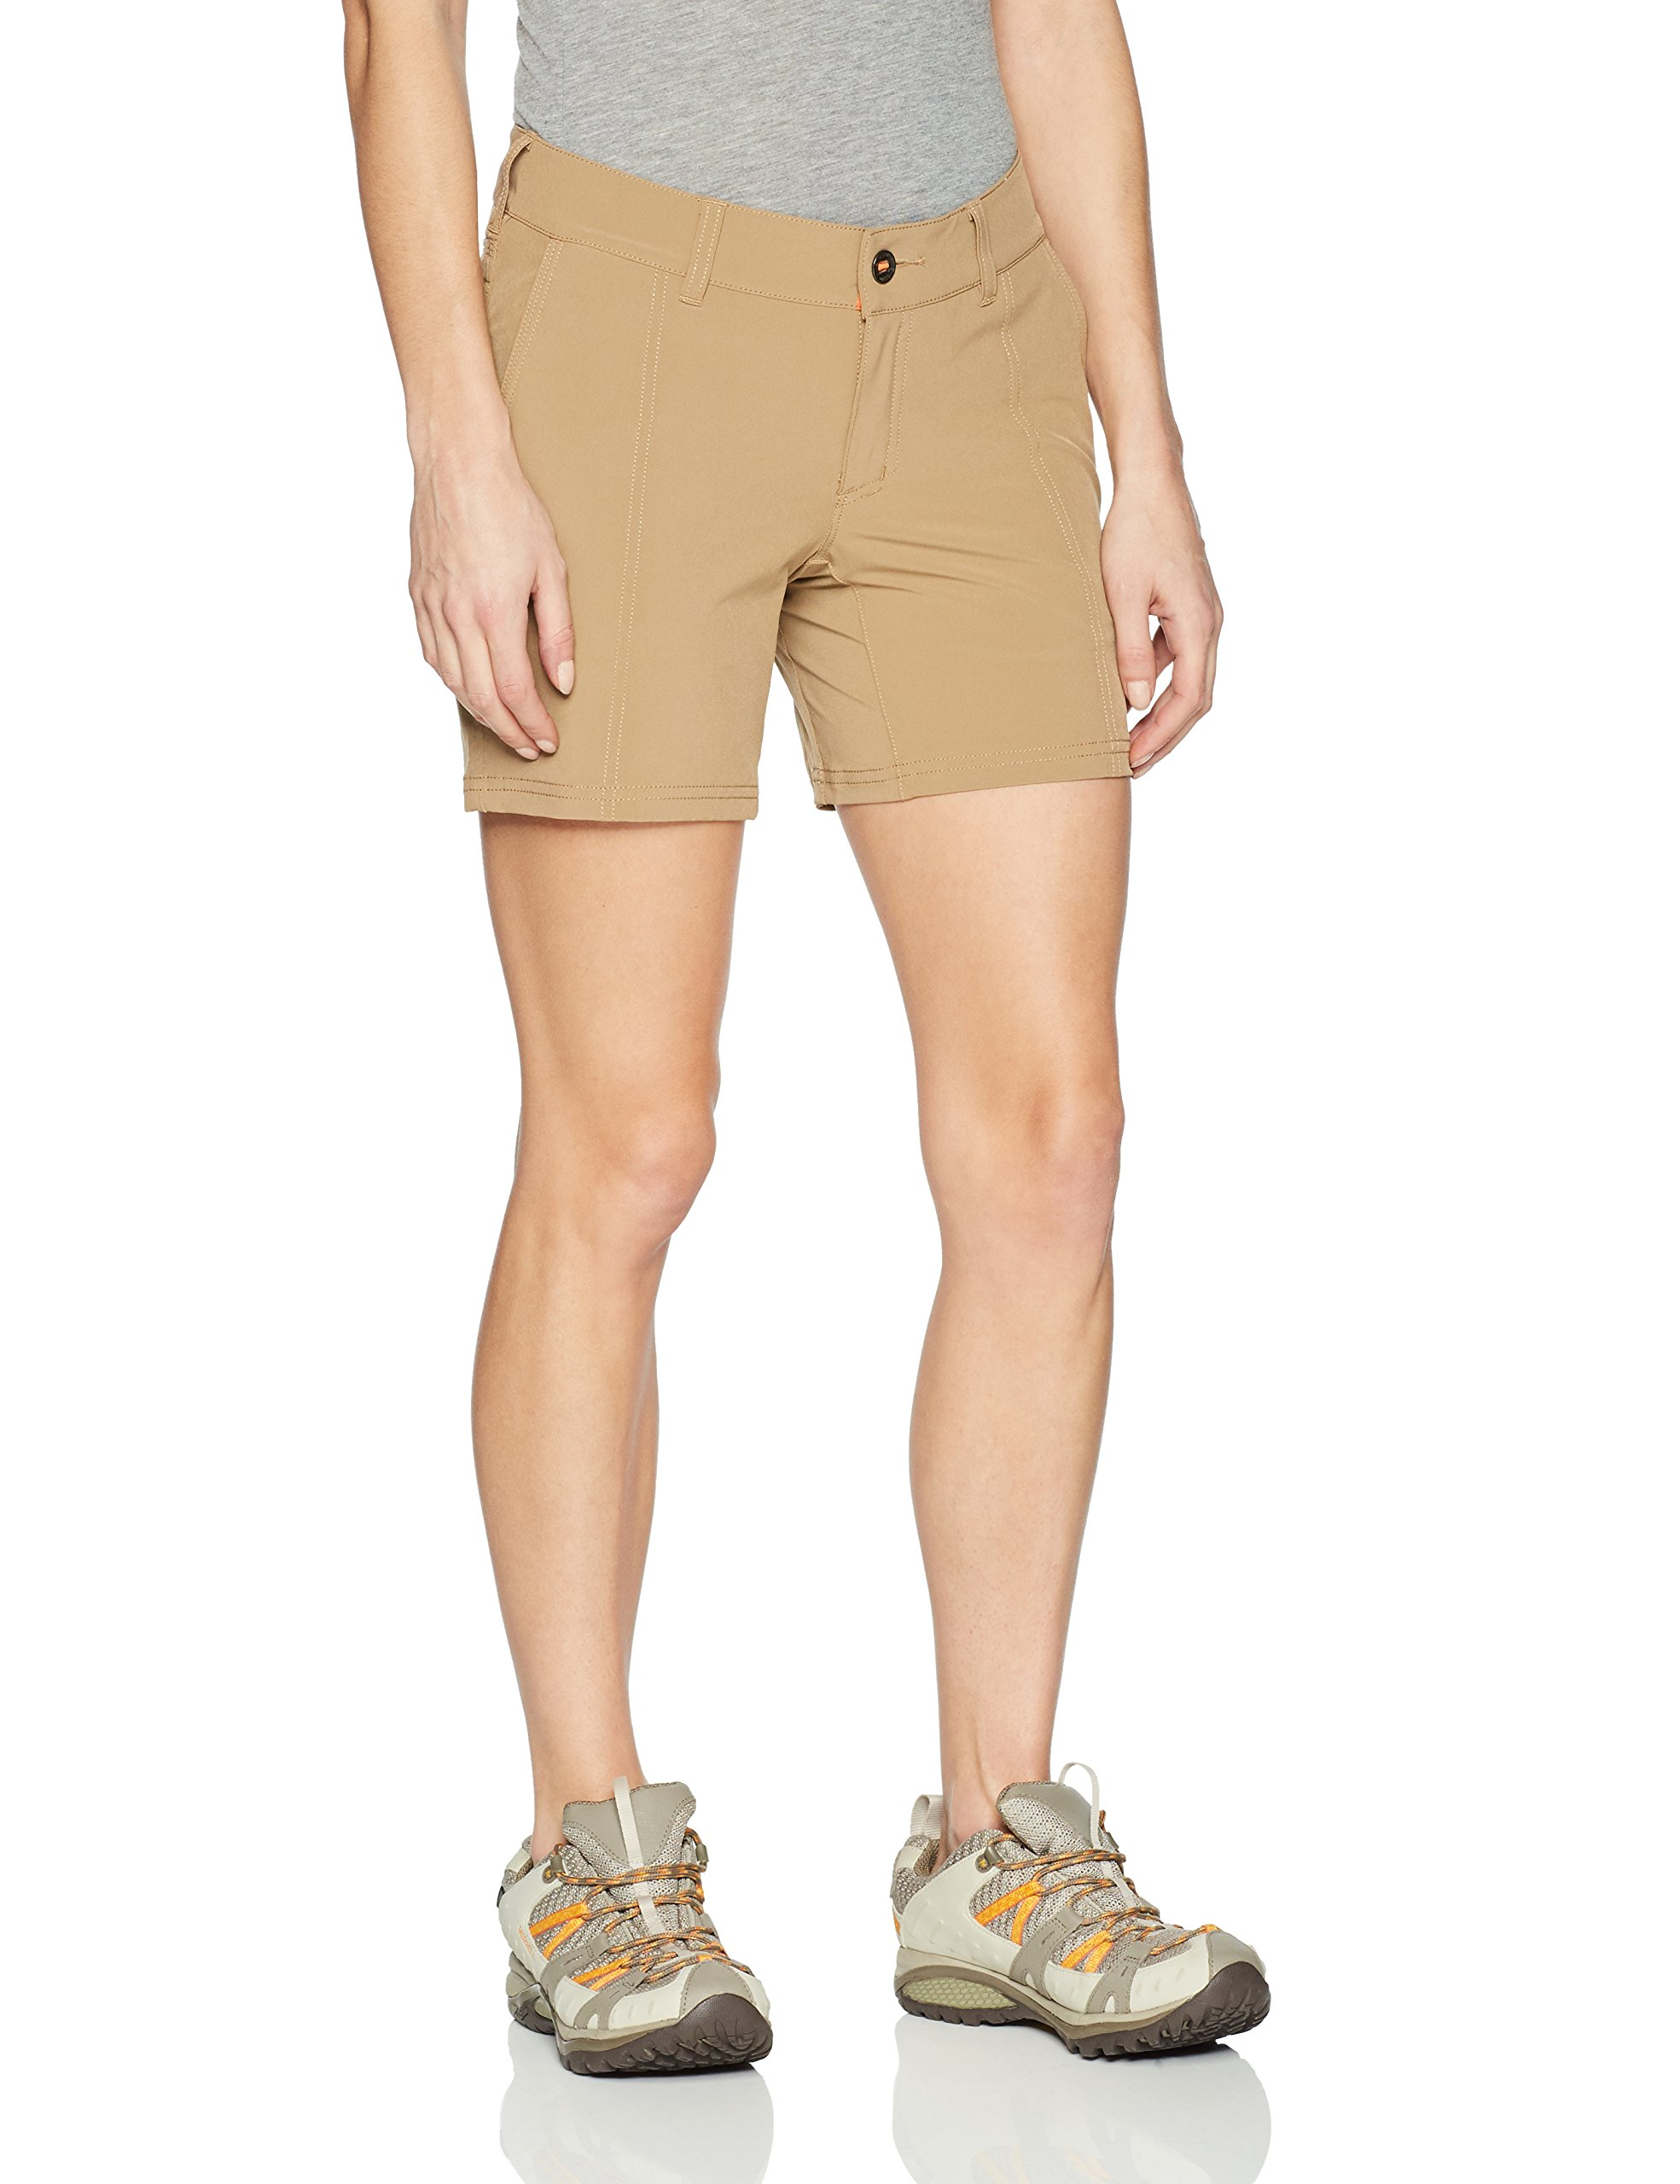 5.11 Women's Shockwave Tactical Shorts, Style 63002, Coyote, 12